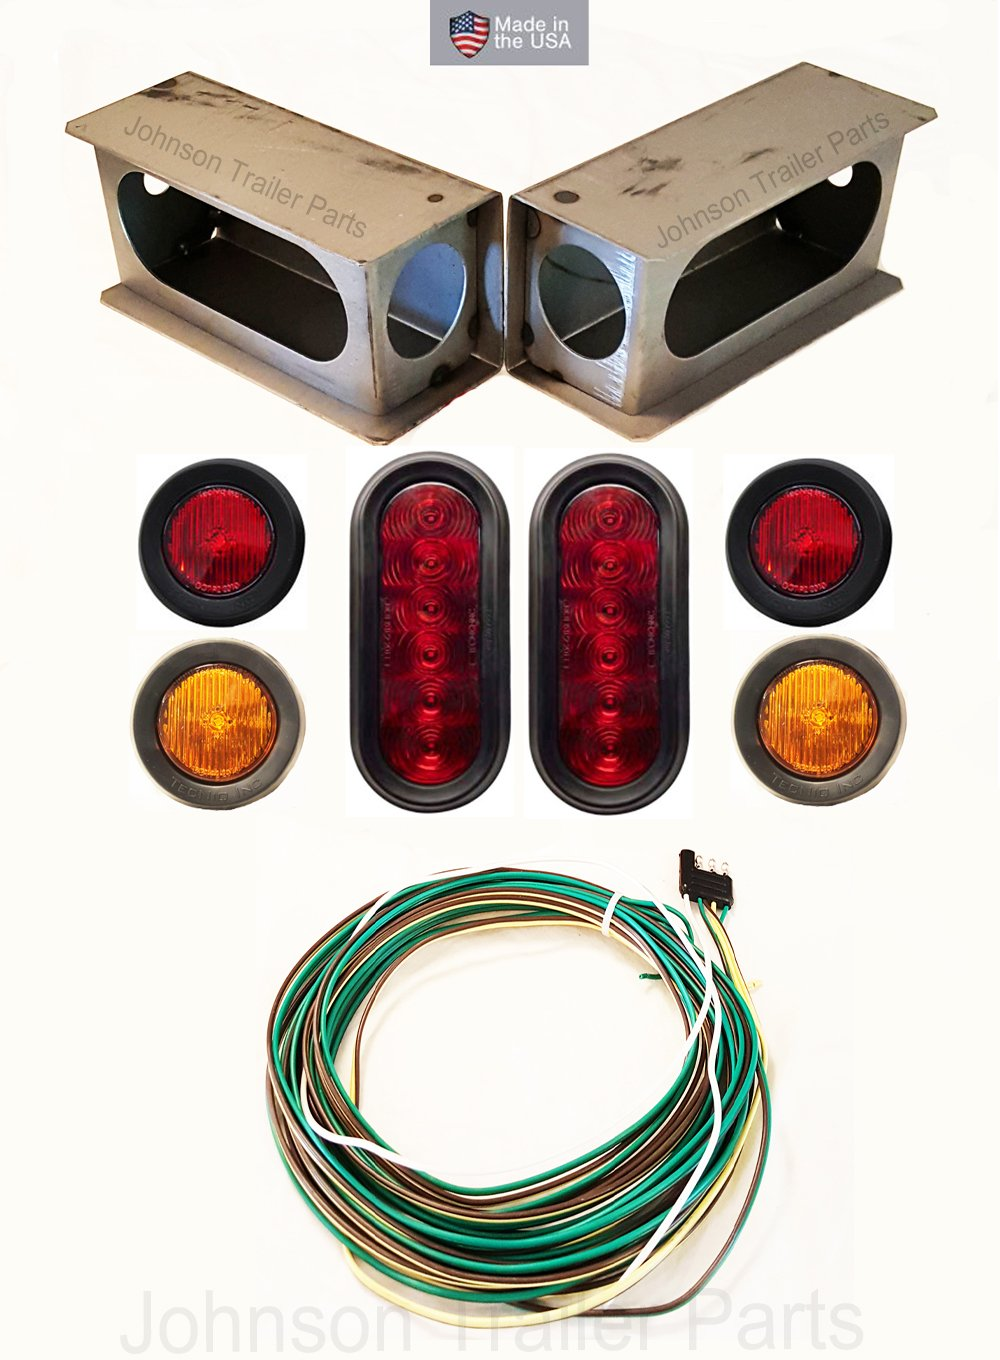 Led Light Kit For Trailers Trucks Rvs W Enclosed Steel Scout 80 Wiring Harness Box Sidemarker Clearance Lights Stop Turn Tail Under